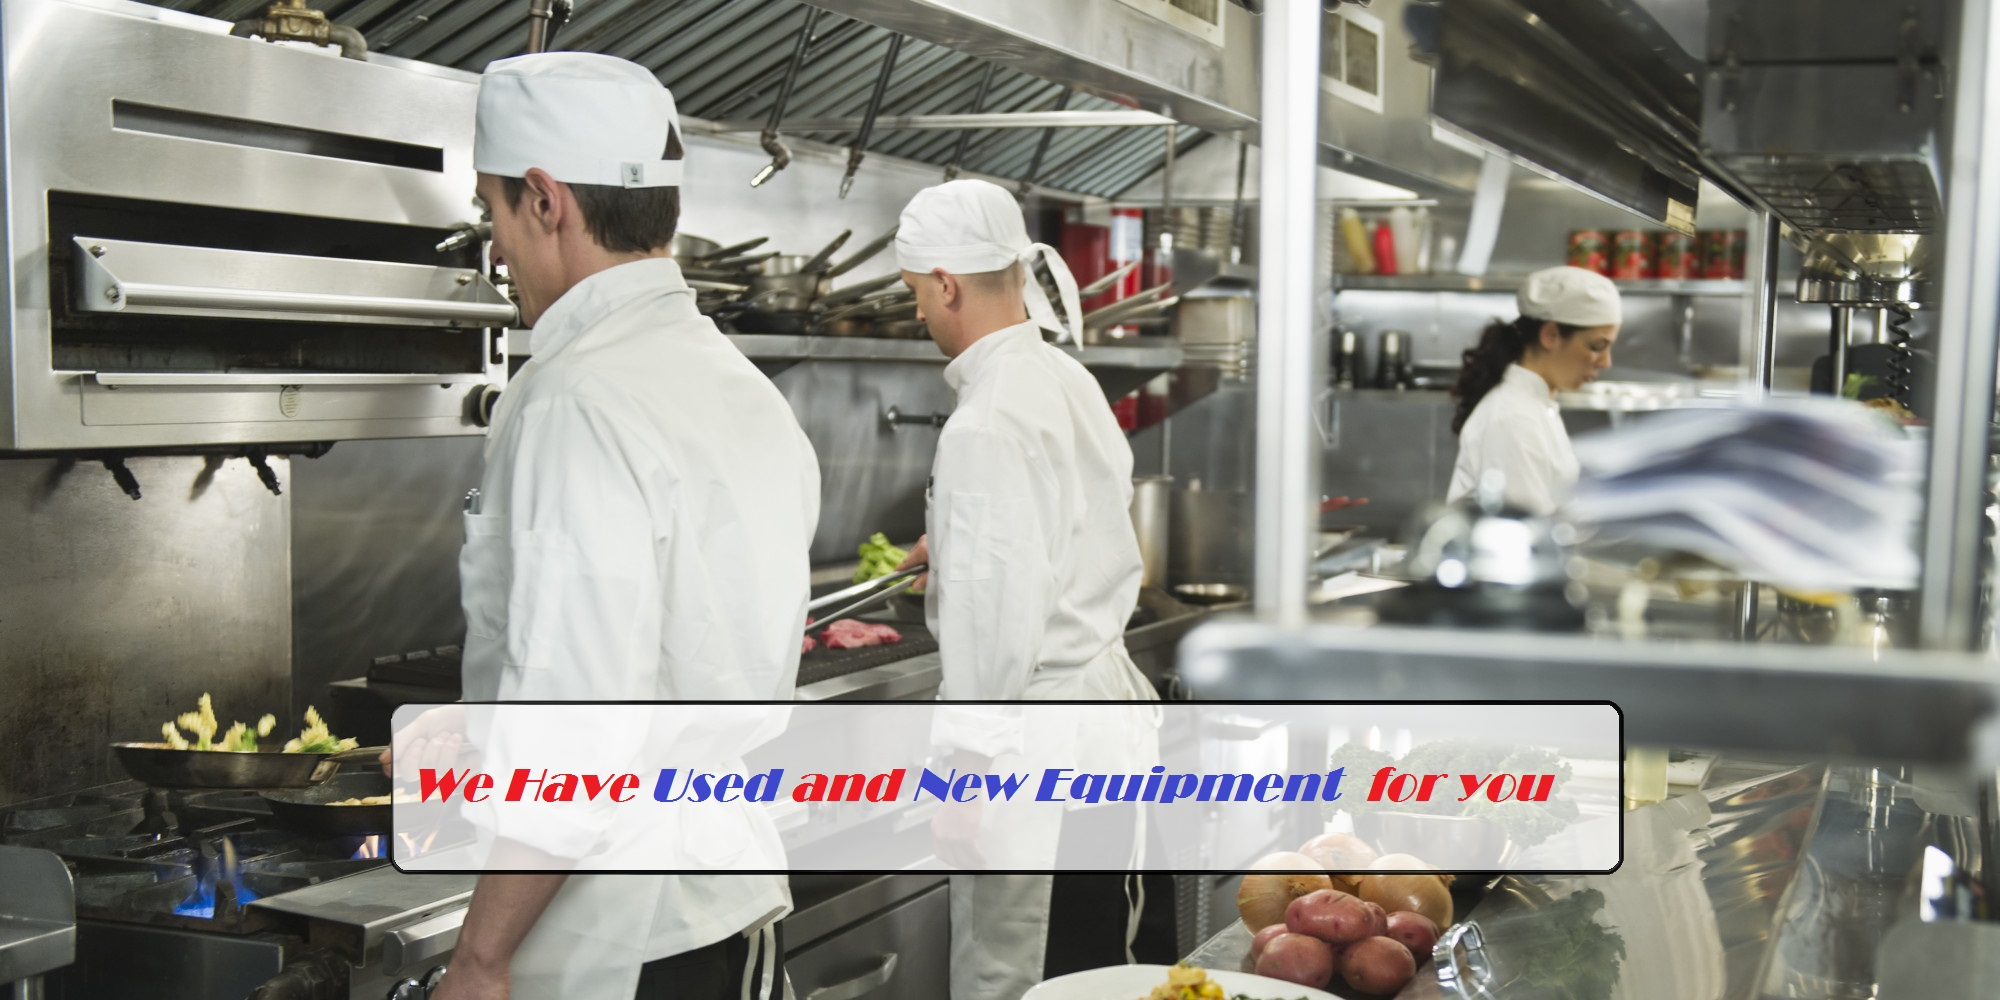 Restaurant kitchen chefs interior design for Equipement restaurant usage